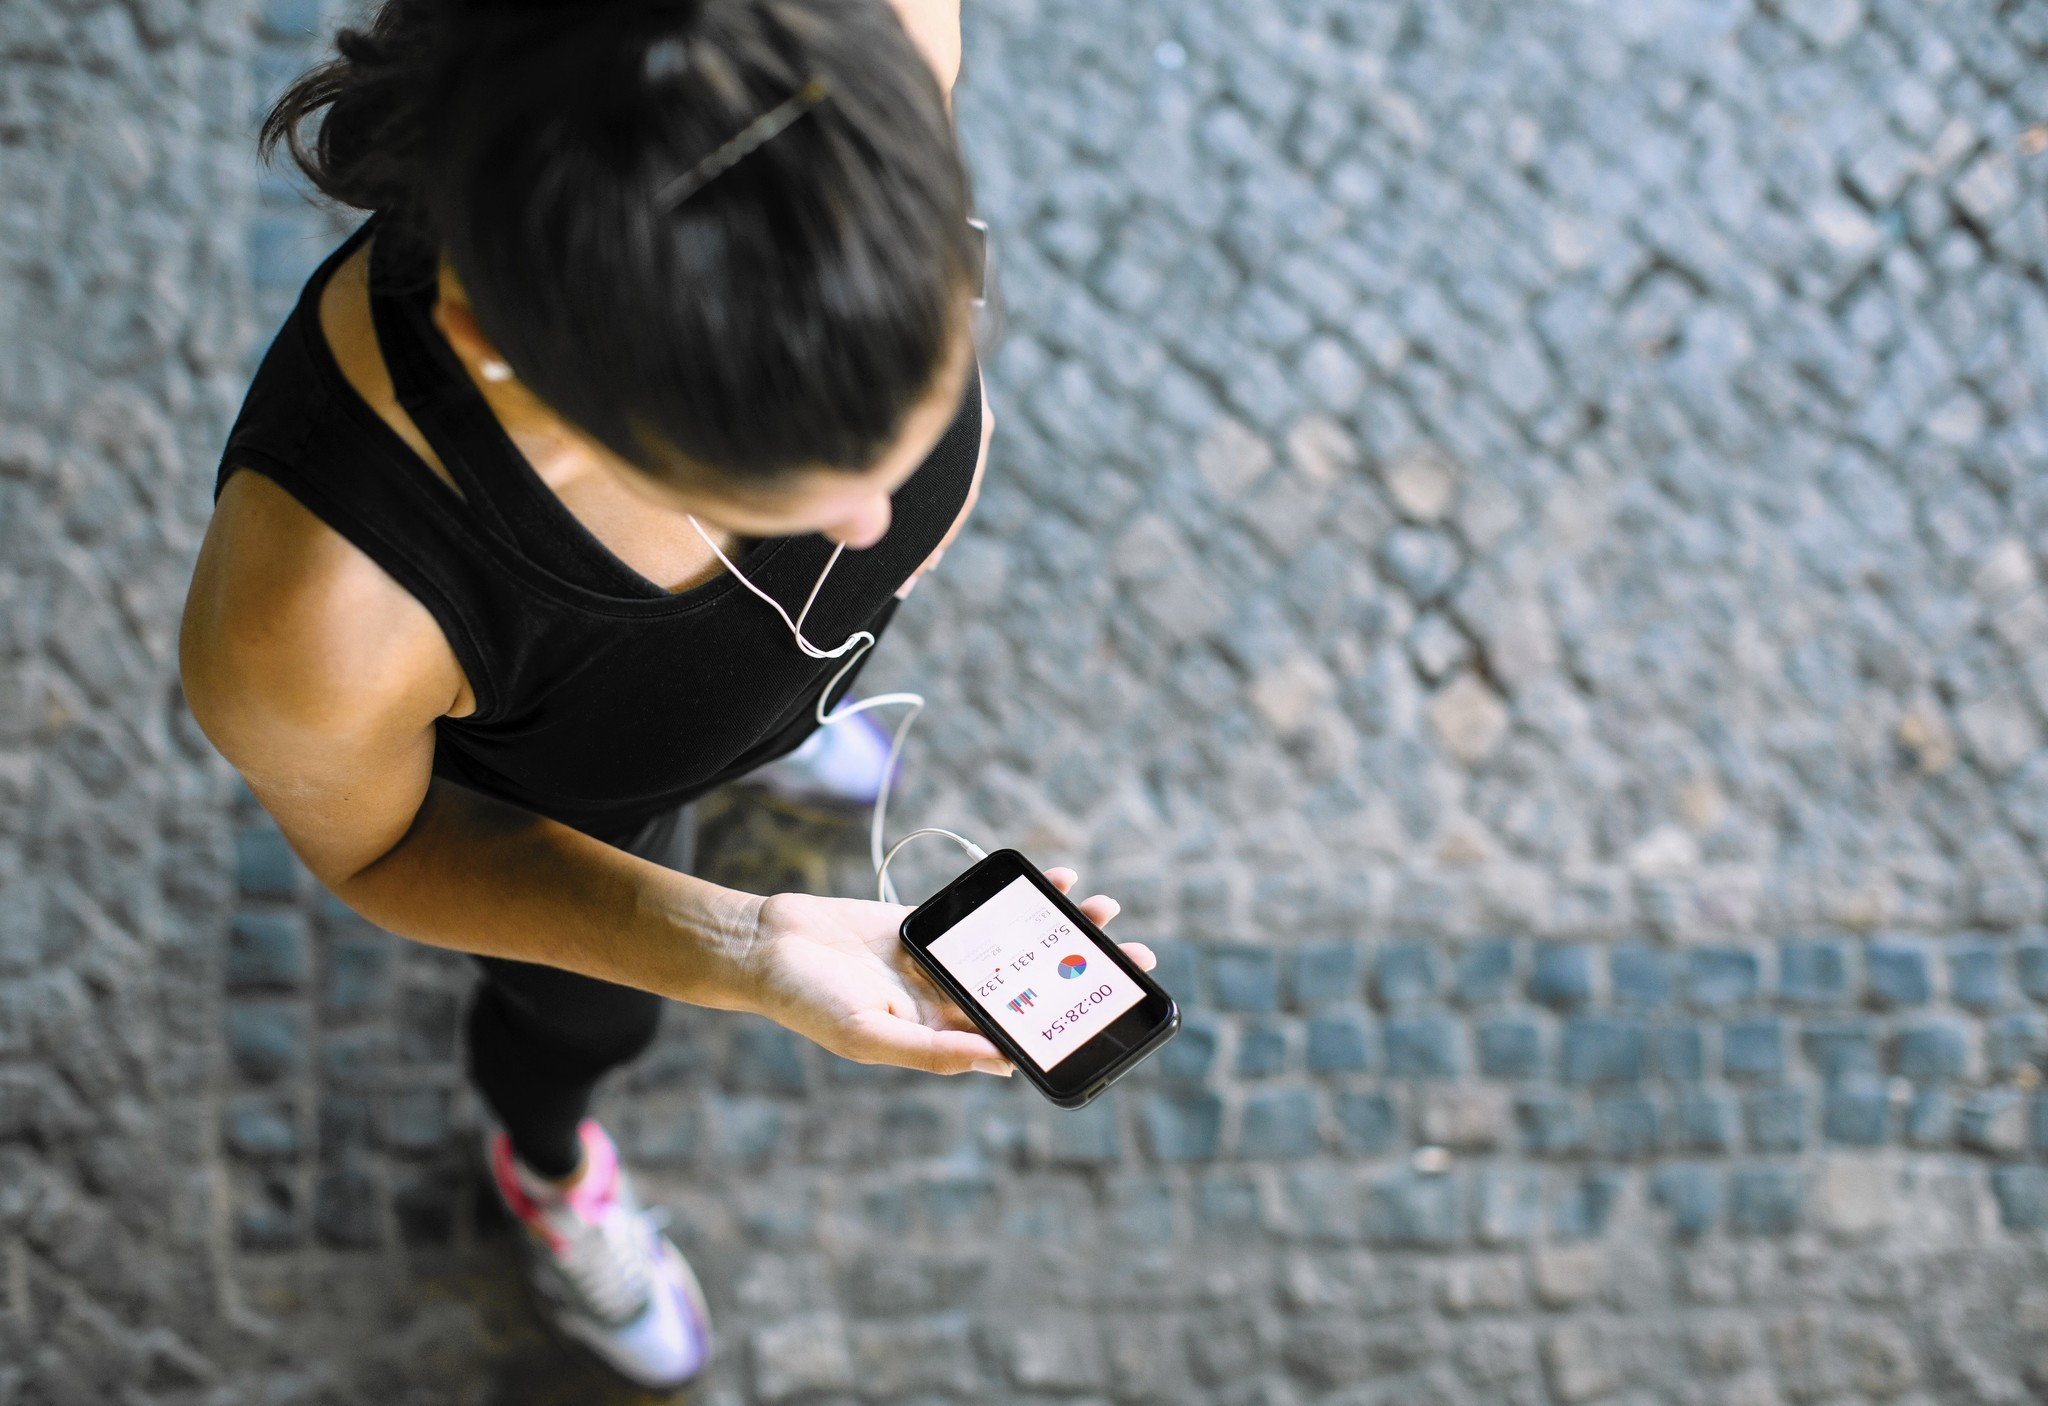 7 fitness and diet apps to help make you healthier